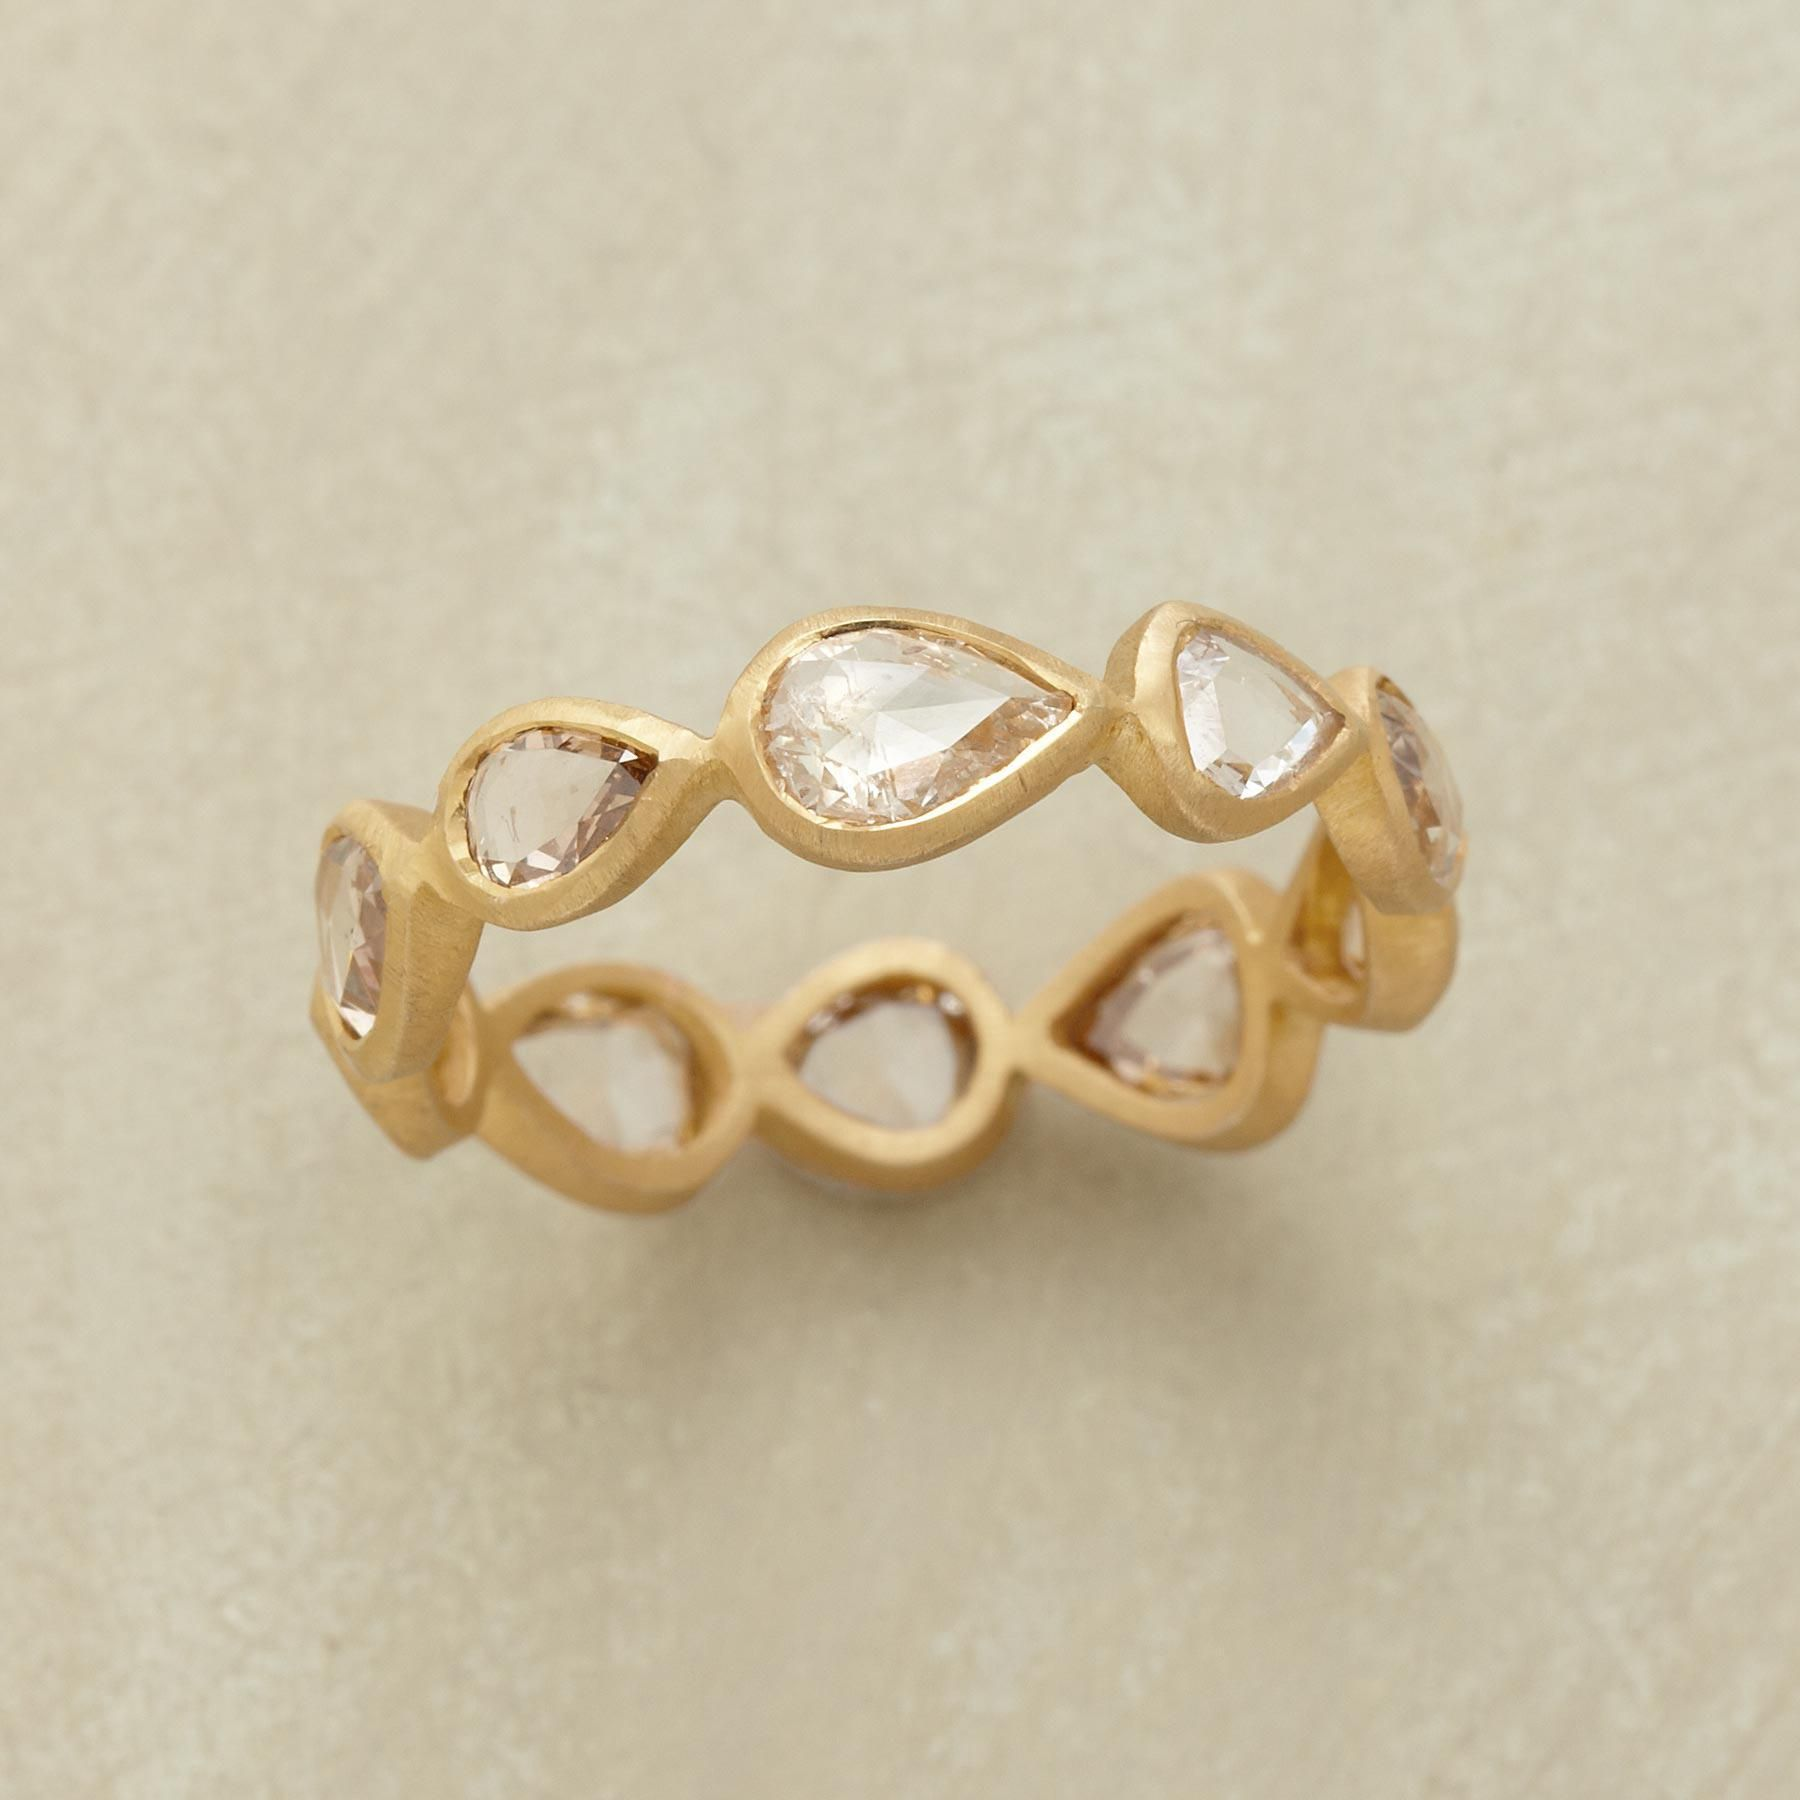 DIAMOND DROPLETS RING--Teardrop diamonds, each unique, line up luxuriously around the finger. They're framed in matte 14kt gold. Sundance exclusive in whole sizes 5 to 9.